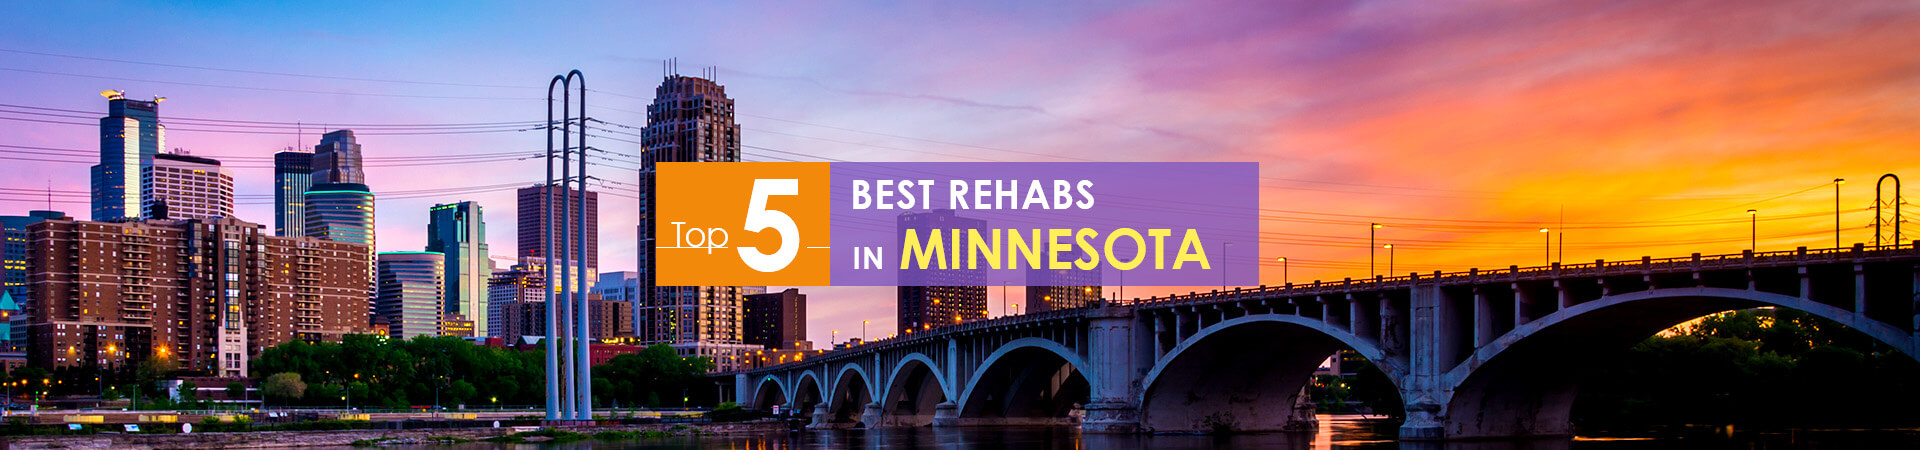 Minneapolis night view and caption top 5 rehabs in Minnesota